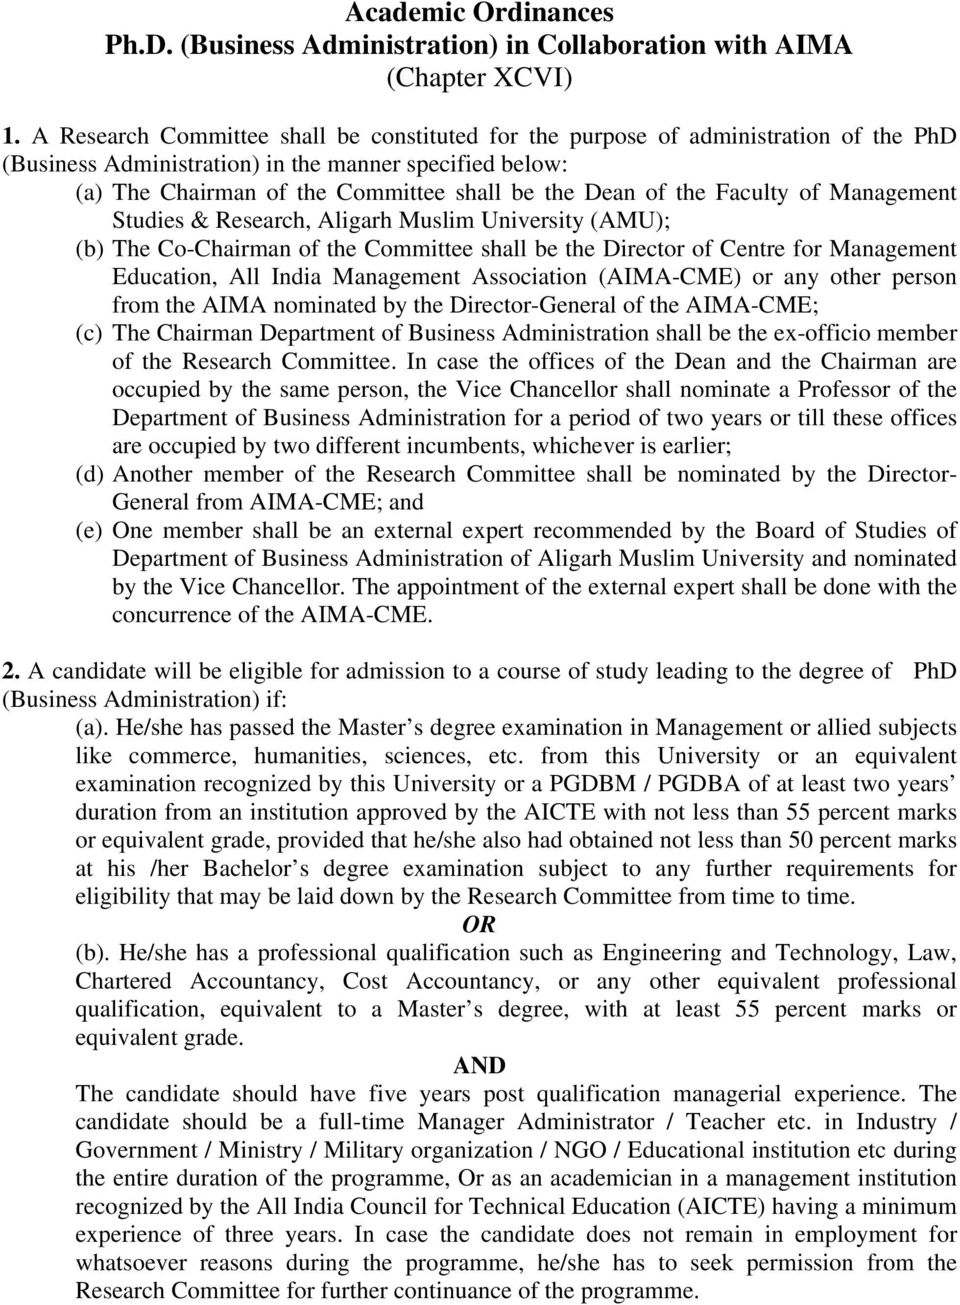 the Faculty of Management Studies & Research, Aligarh Muslim University (AMU); (b) The Co-Chairman of the Committee shall be the Director of Centre for Management Education, All India Management